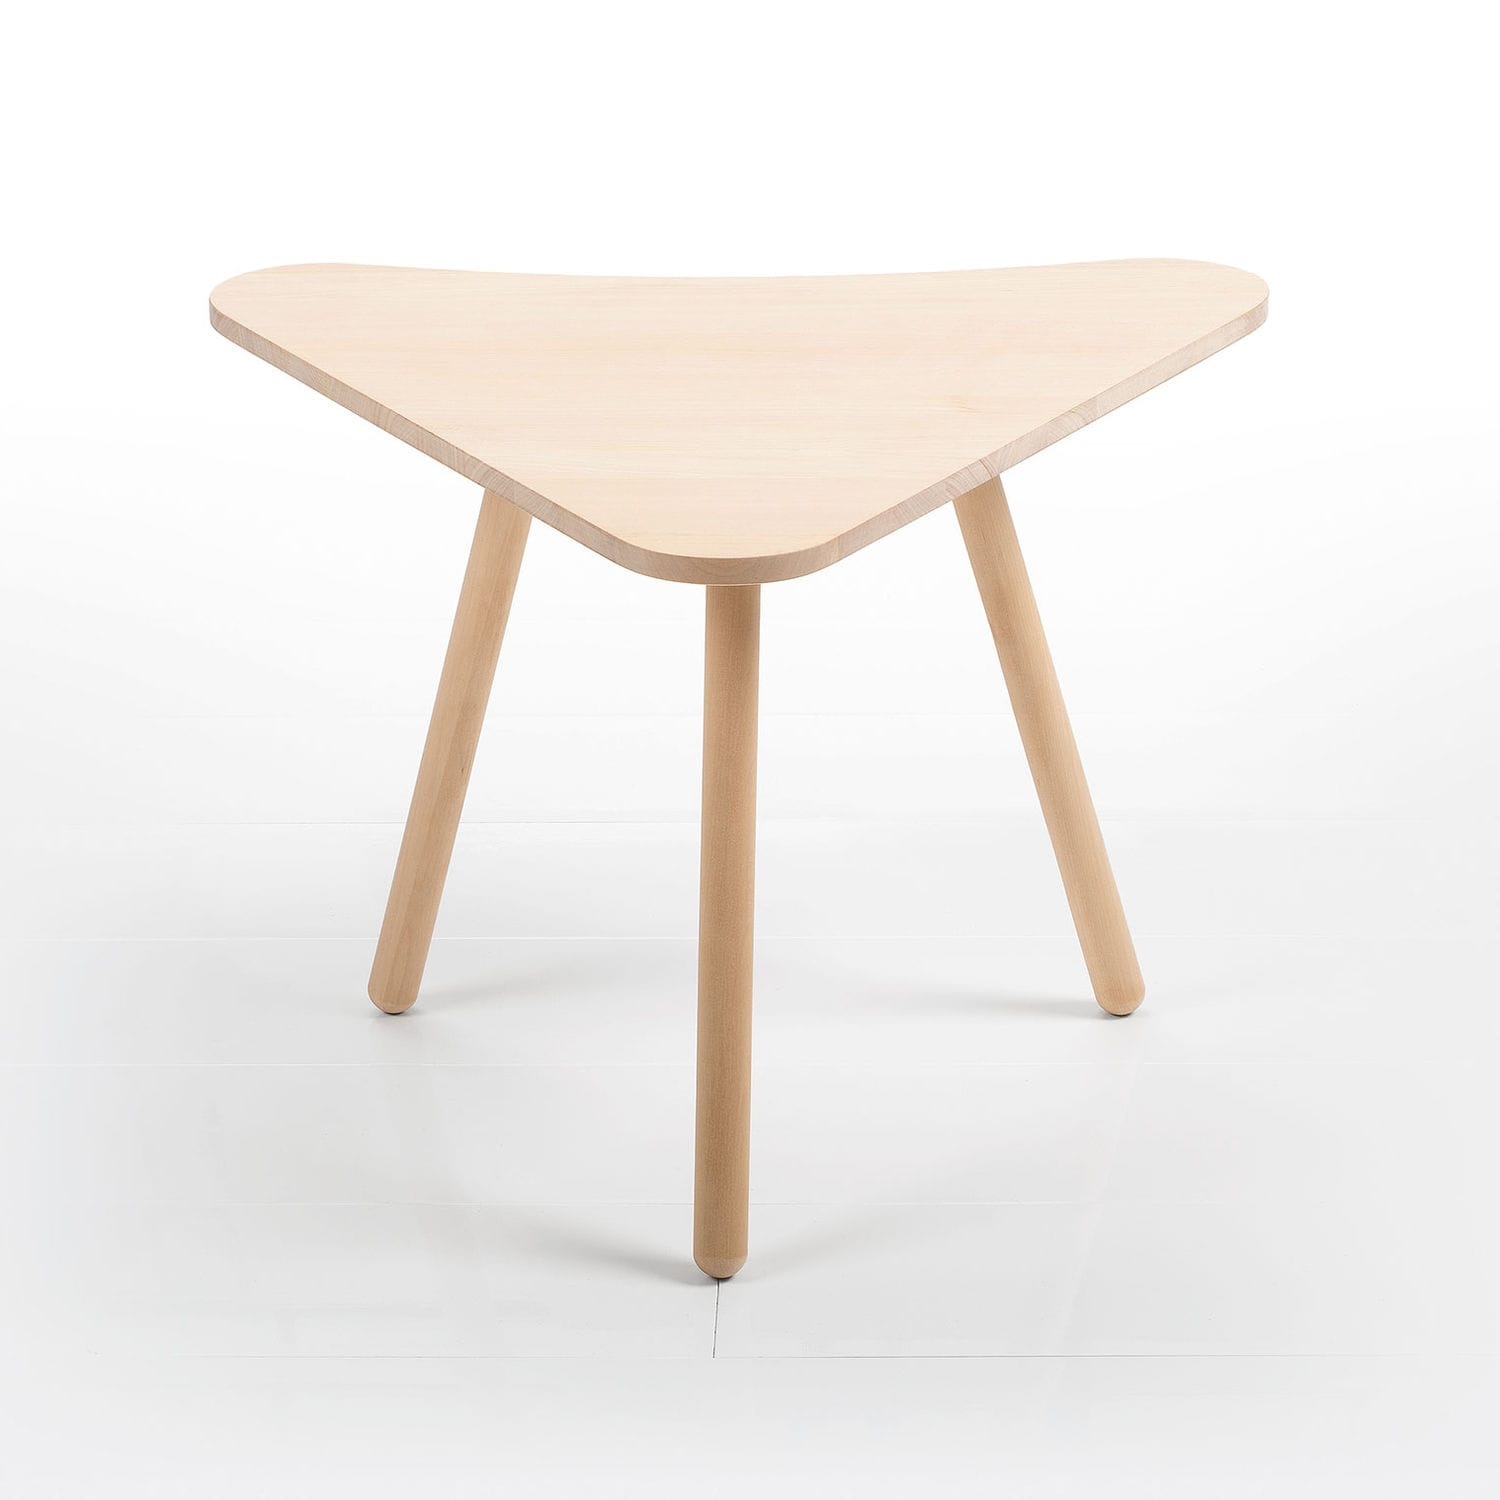 Contemporary side table birch triangular modular MOKA by